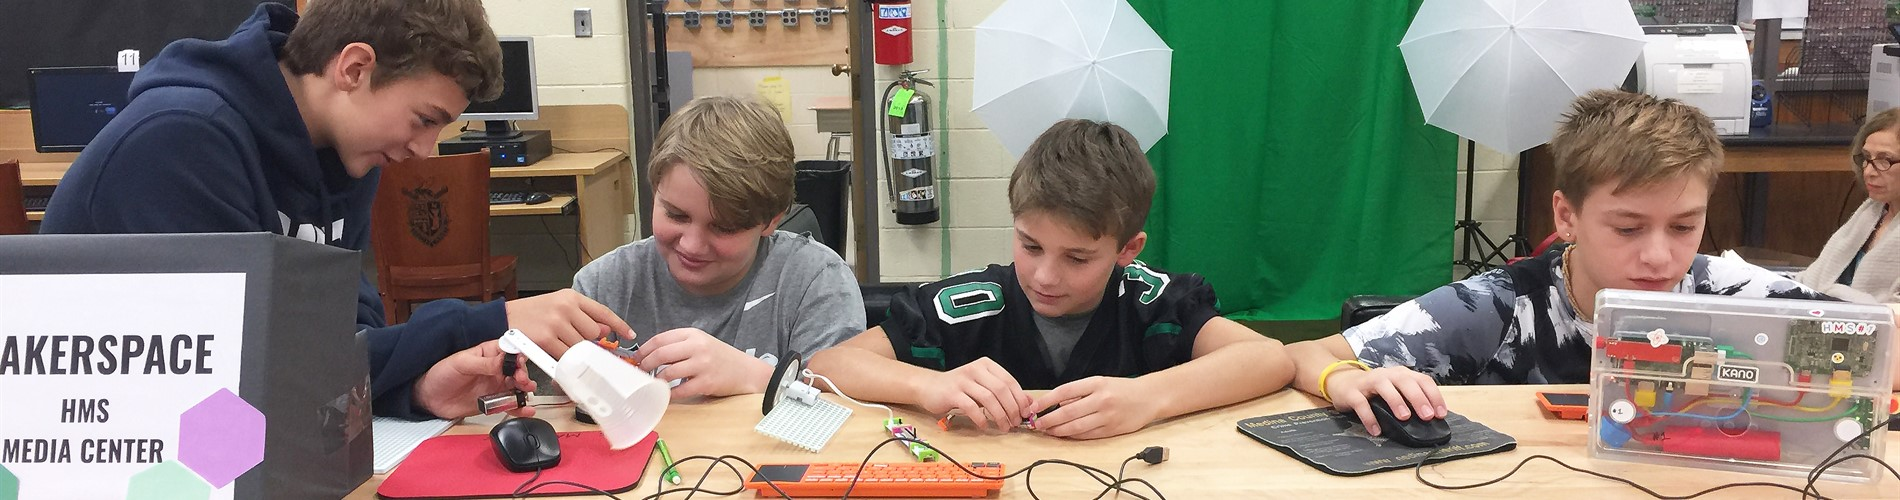 Highland Middle School Makerspace Grant